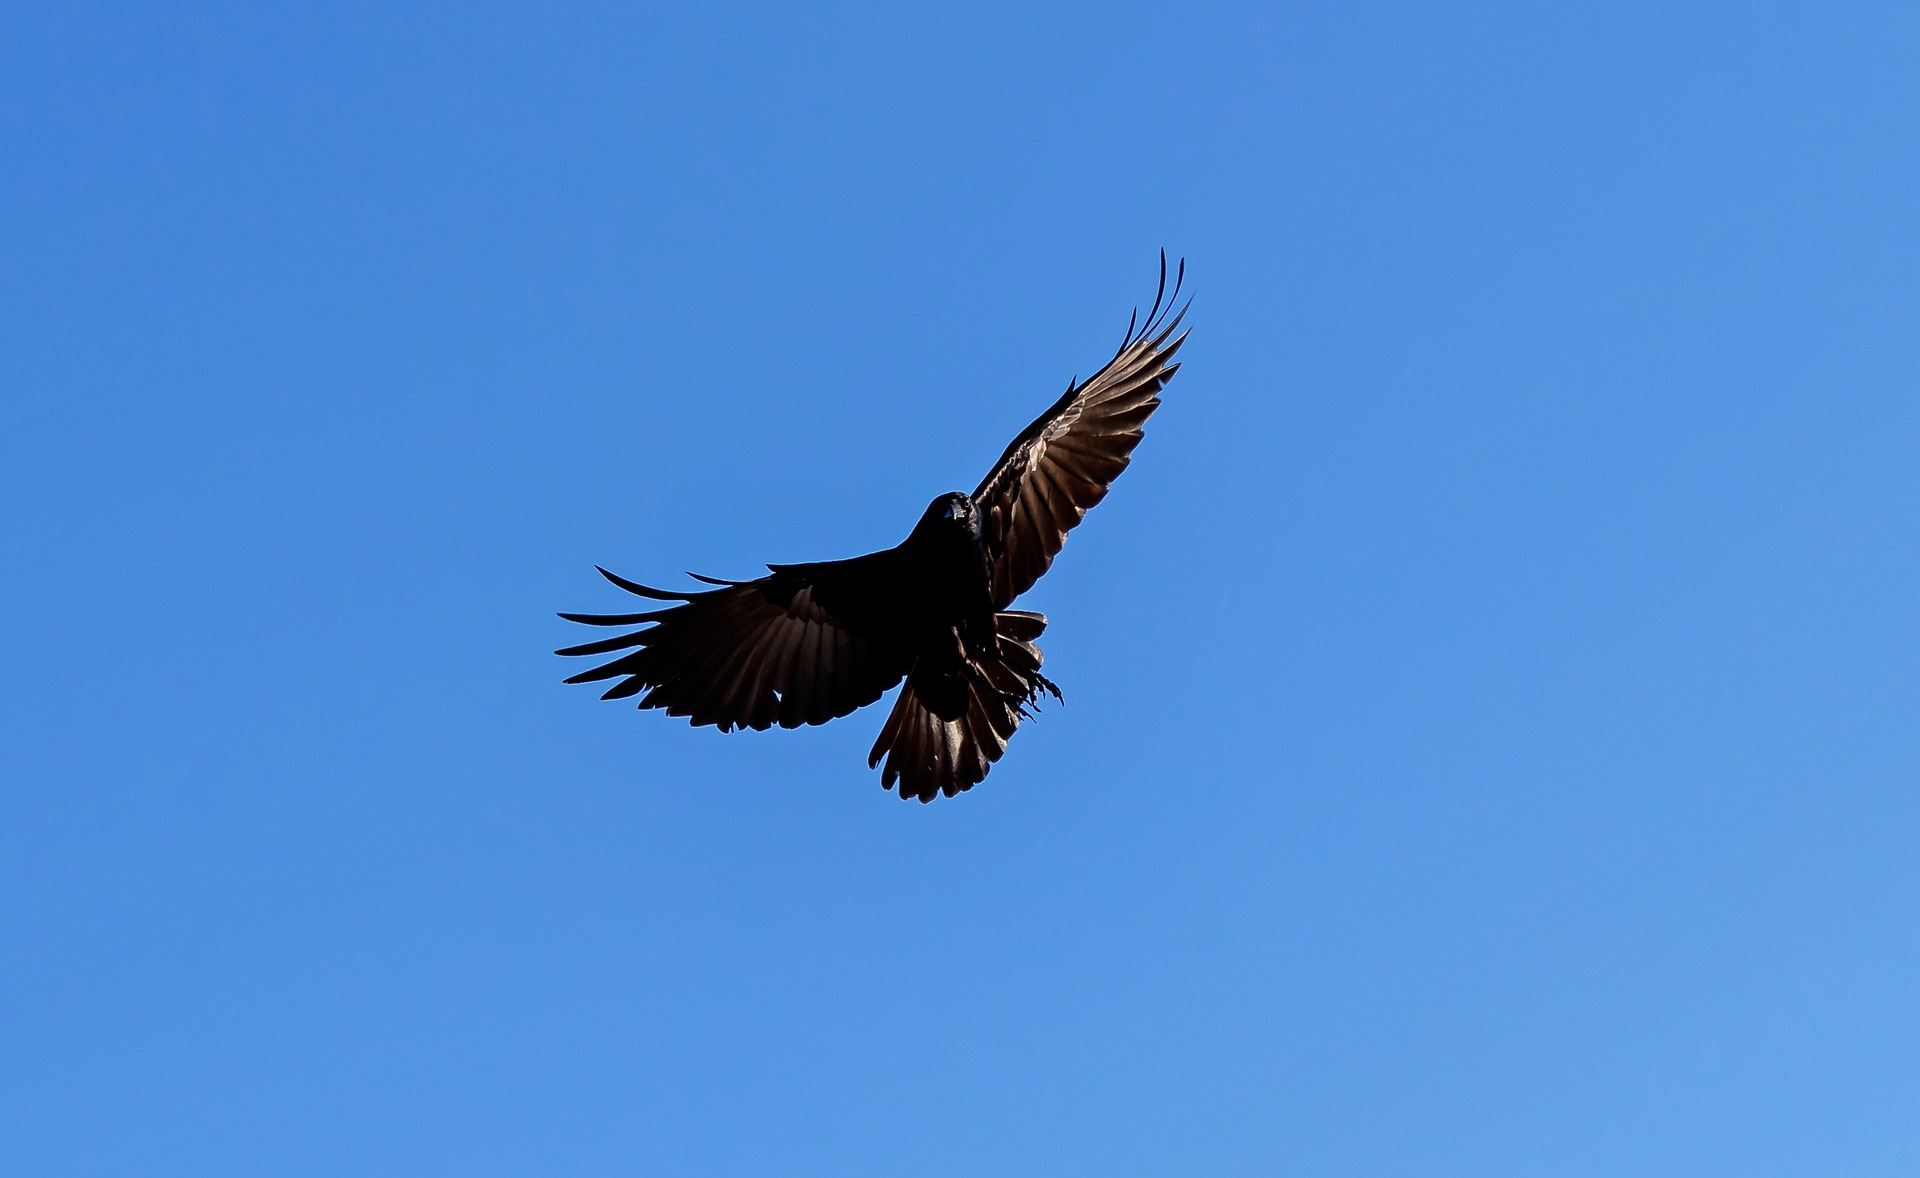 American crow in flight with blue sky background